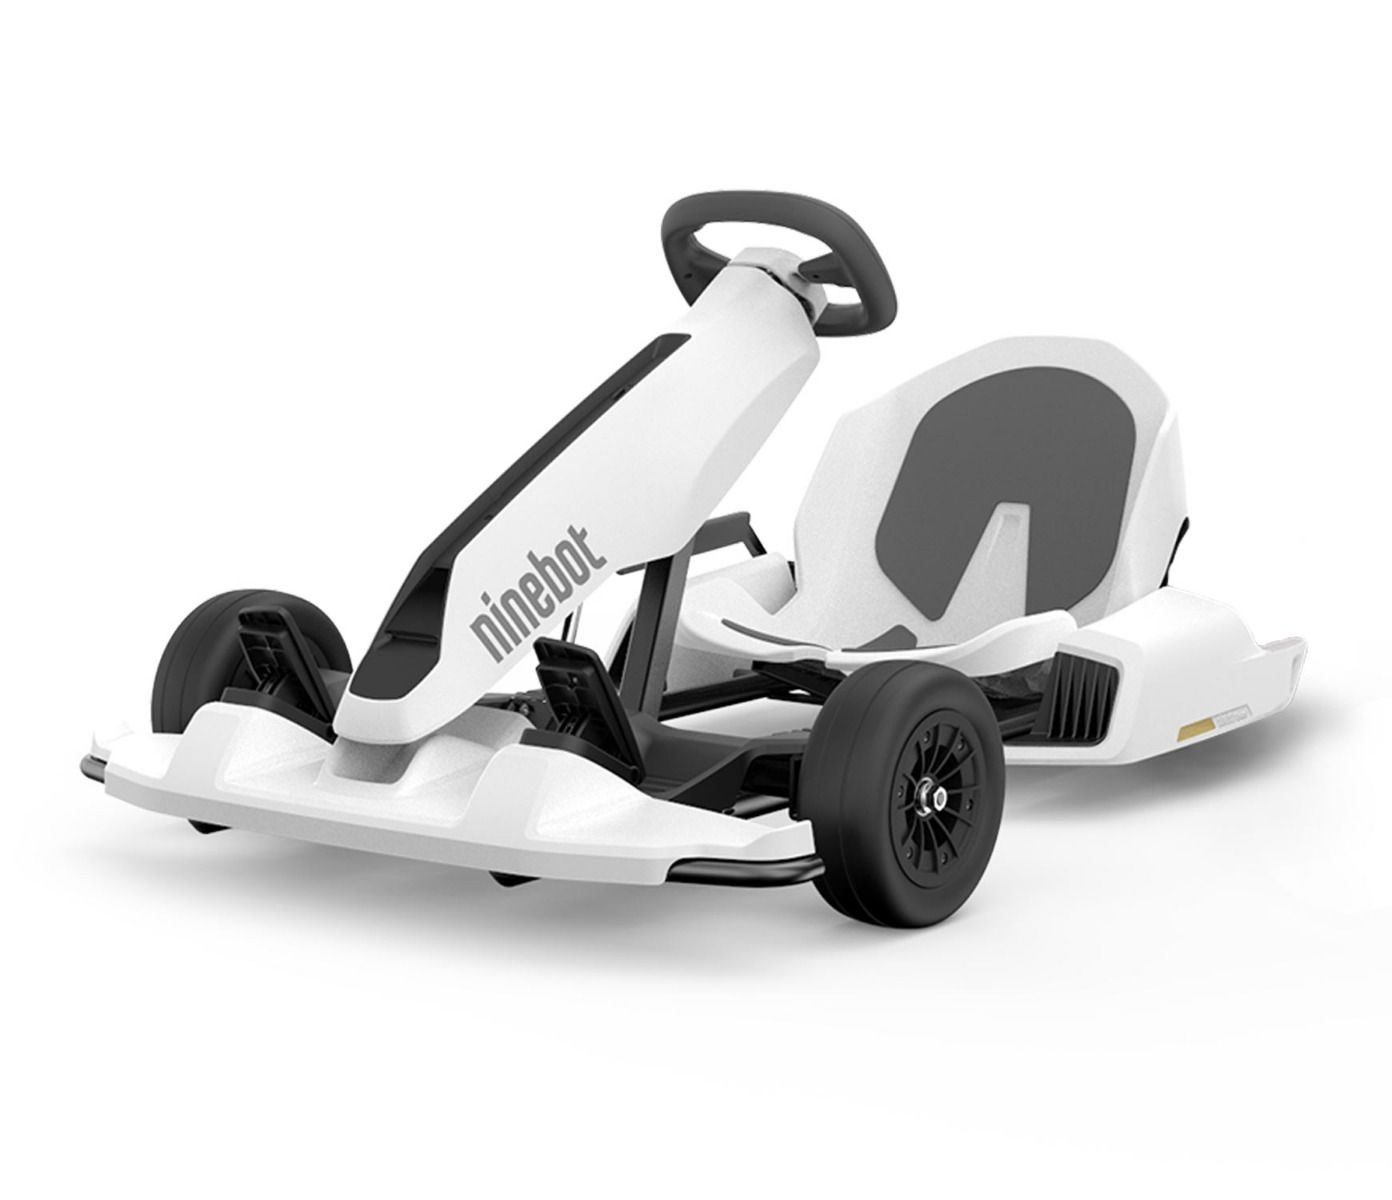 Best Go Karts For 10-Year-Old 2020